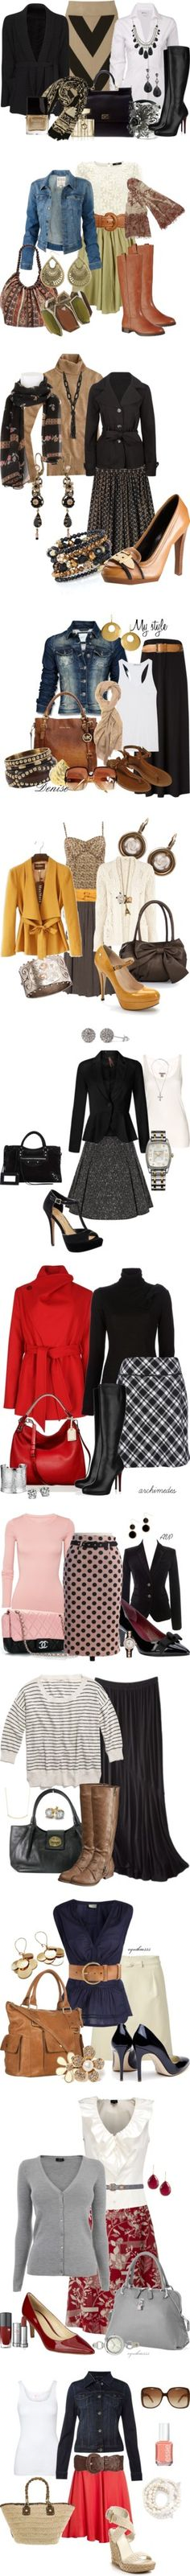 """""""Don't Skirt the Issue"""" by stylesbyjoey on Polyvore"""